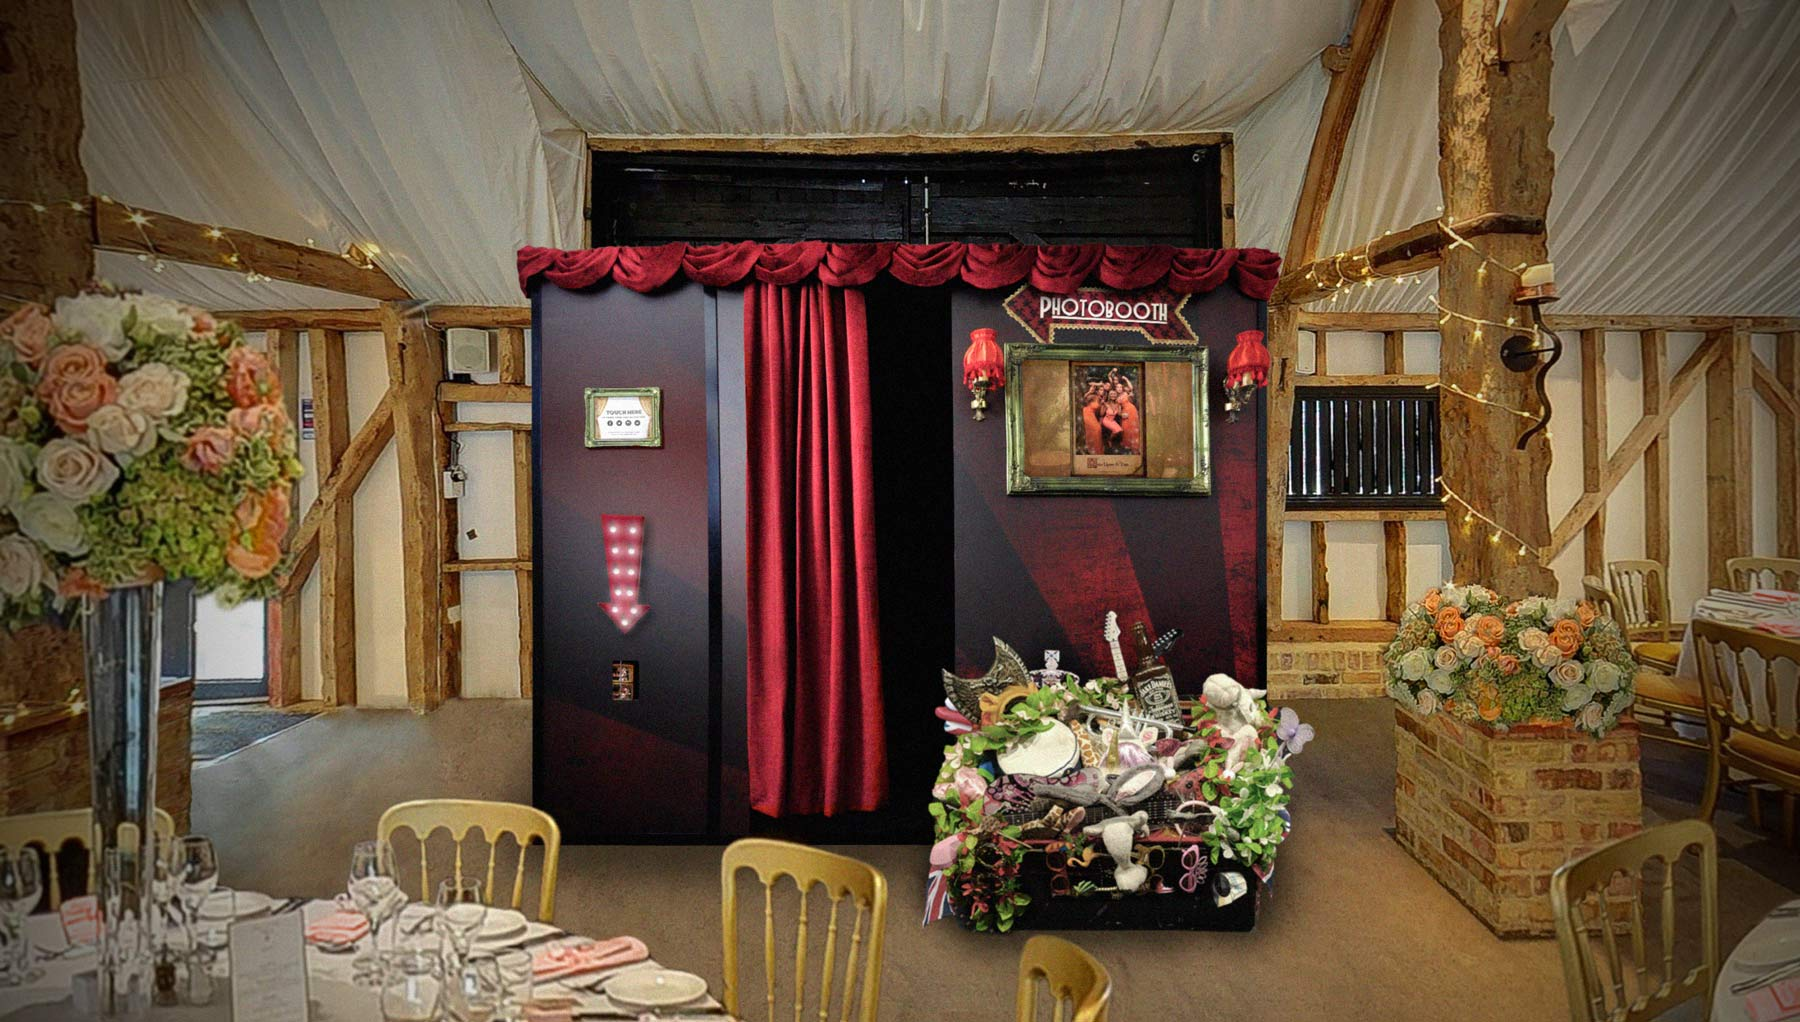 The Big Top photo booth set up for a wedding in the Tudor Barn at South Farm